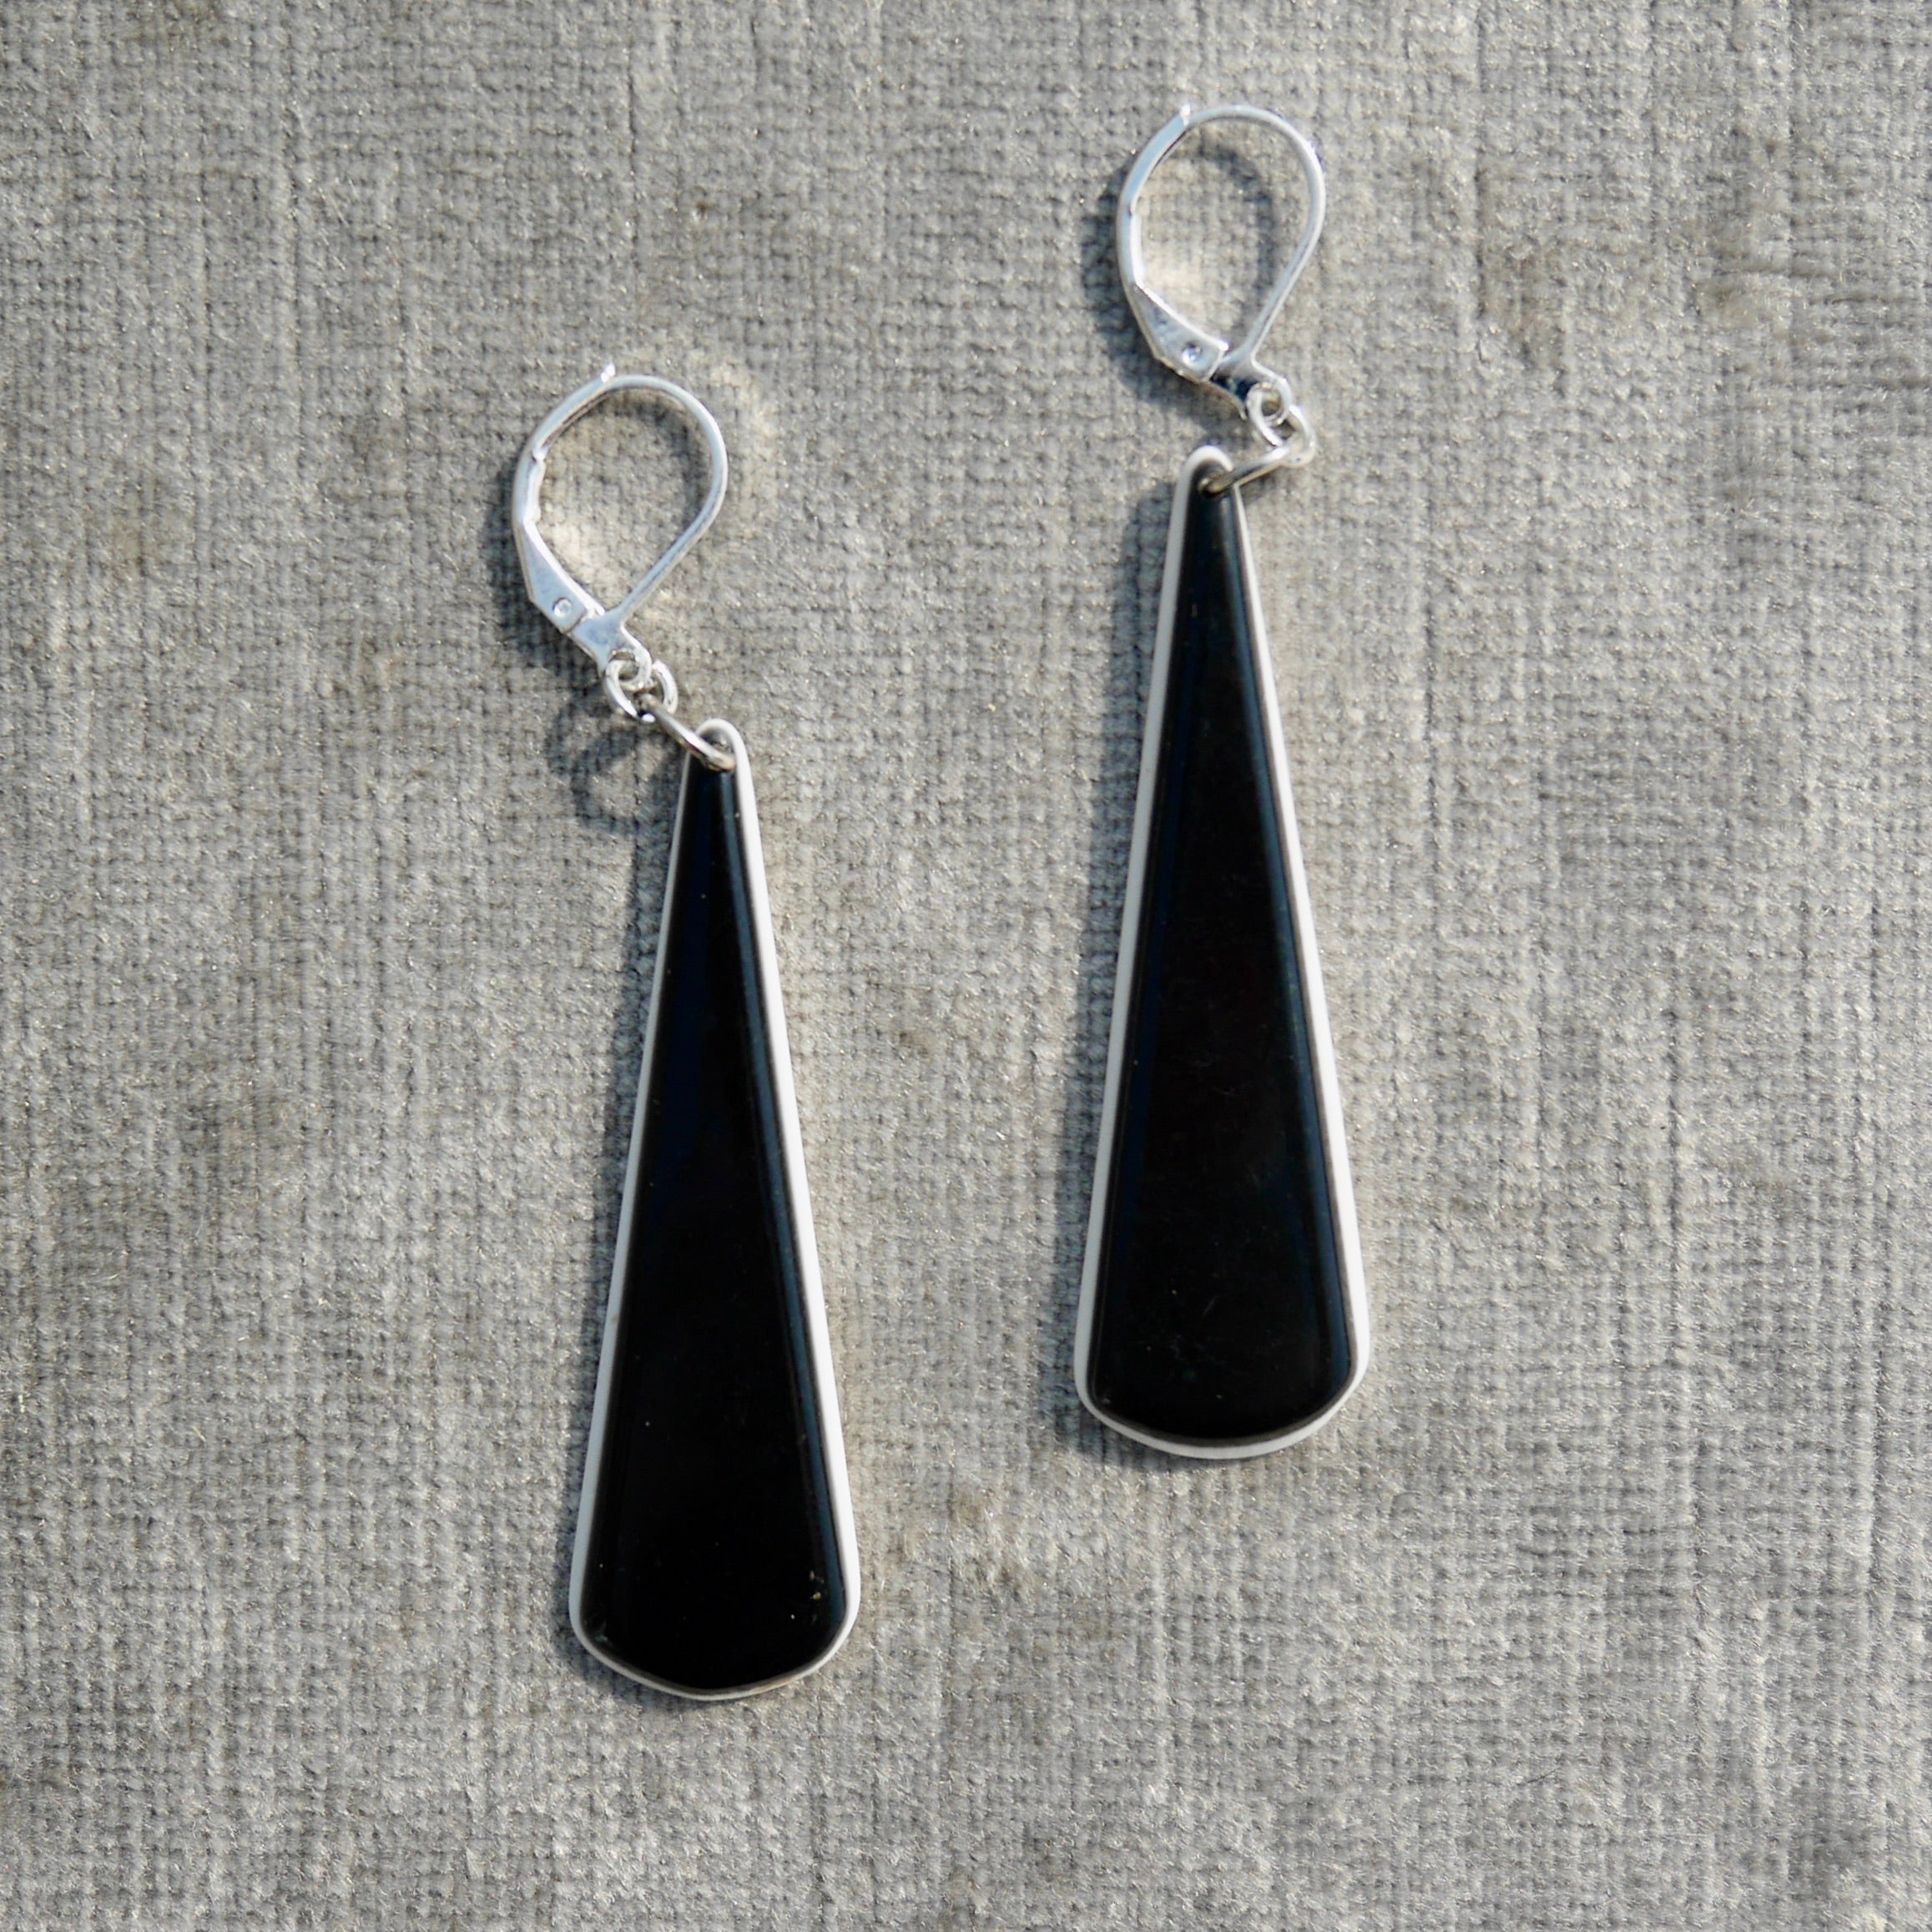 Upcycled 1980s Dangly Black and White Earrings